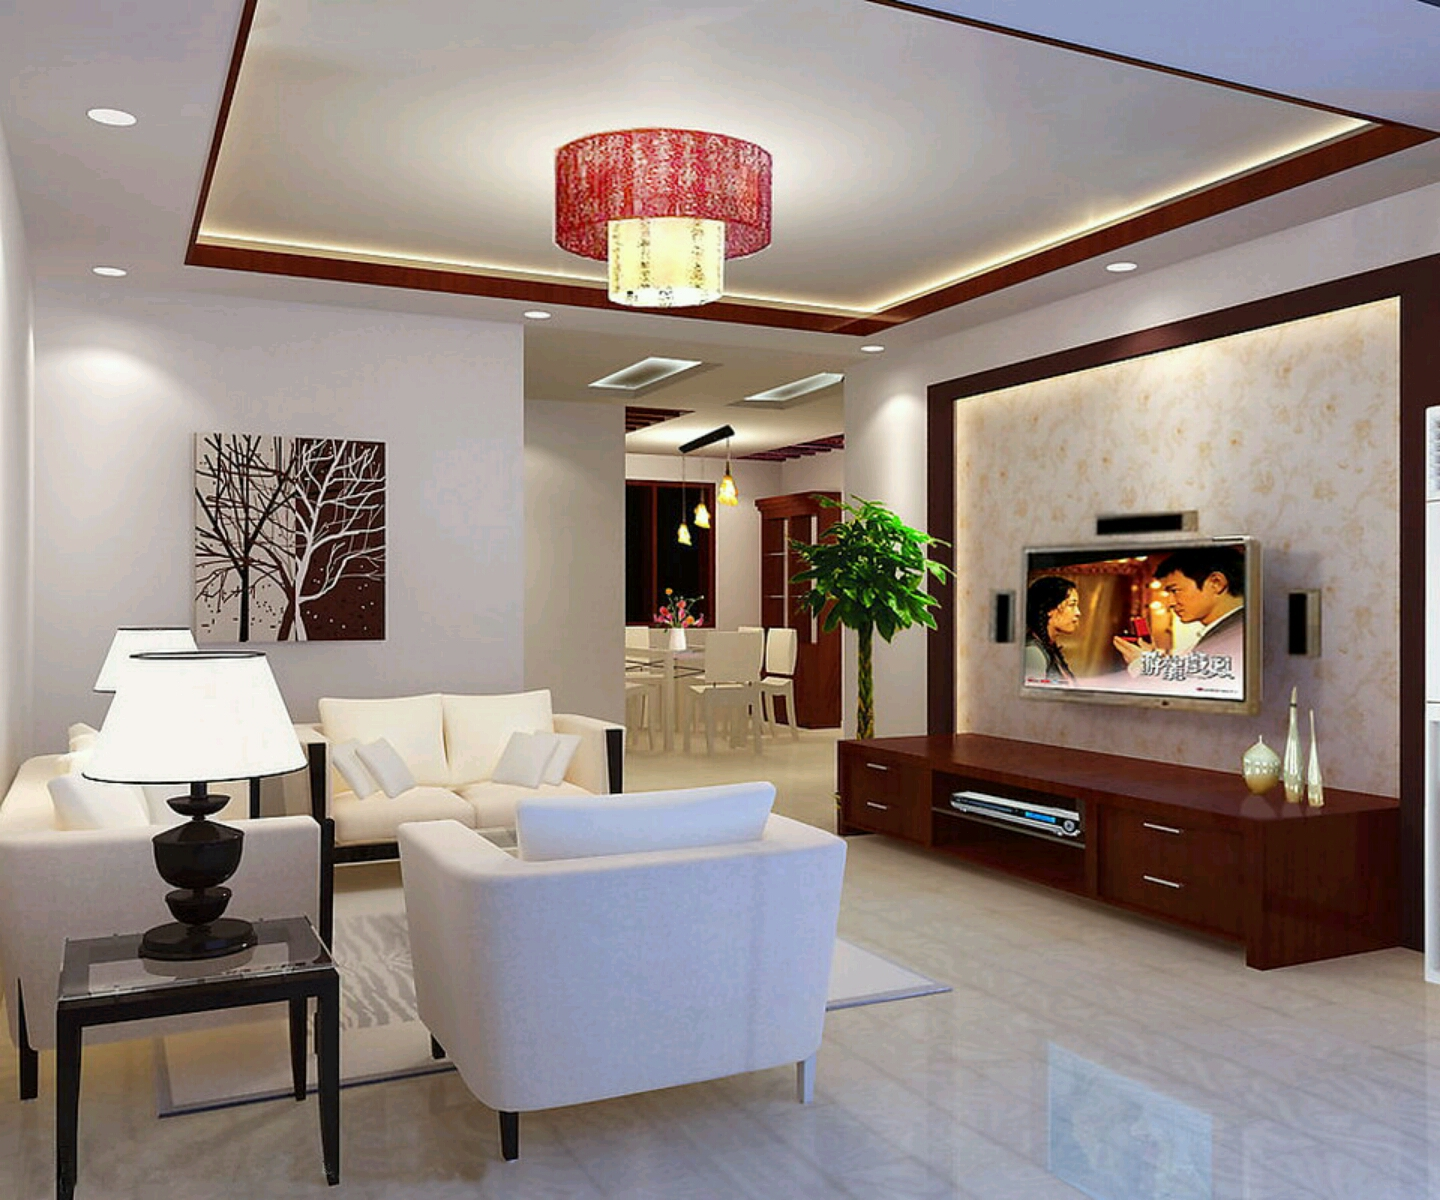 New home designs latest modern interior decoration for Home living room interior design ideas